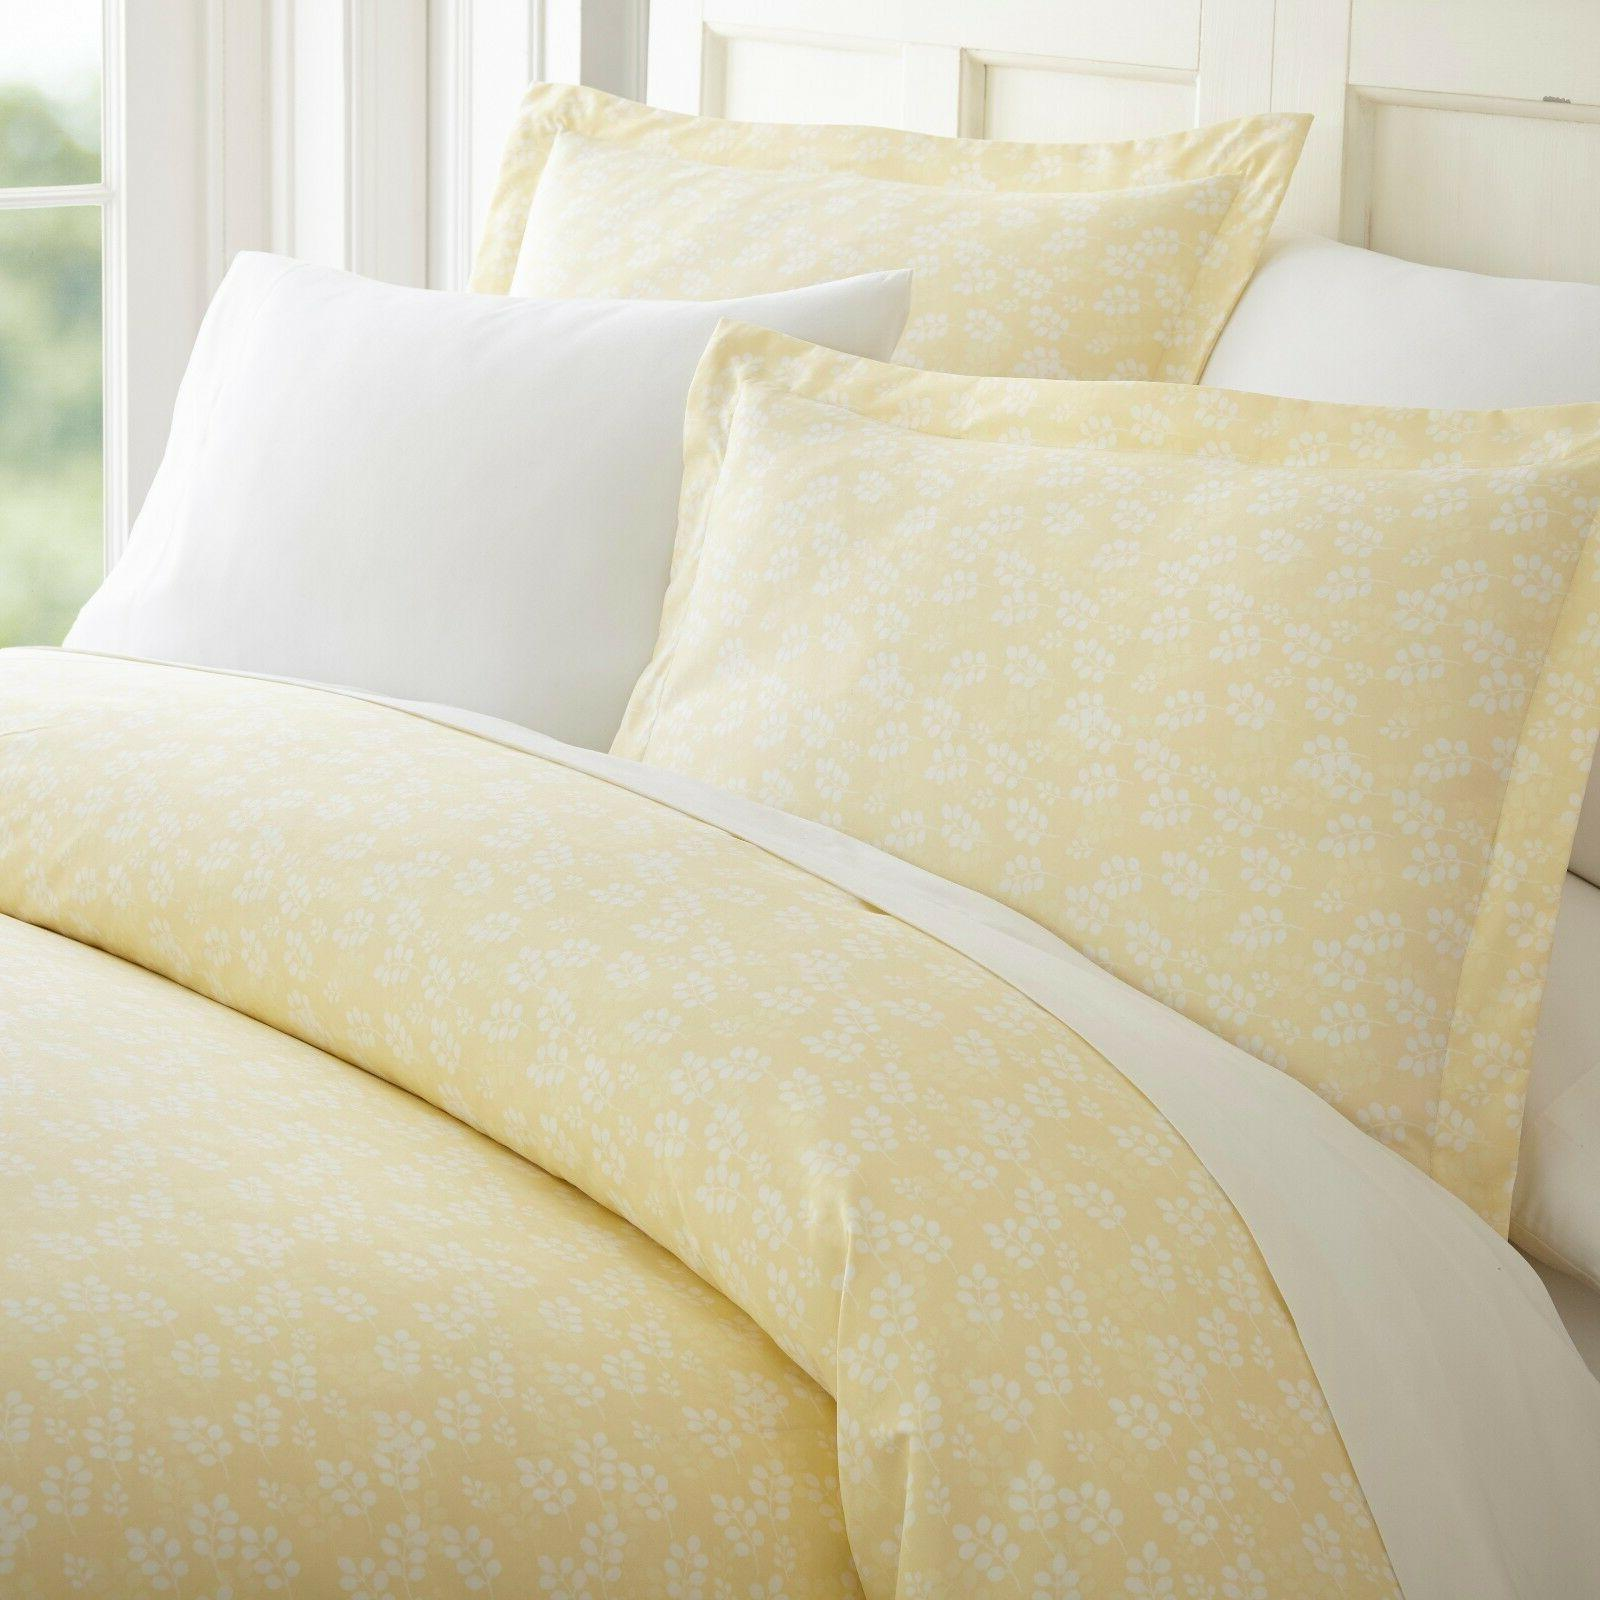 3 Piece Duvet Cover by Collection -8 Beautiful Designs!